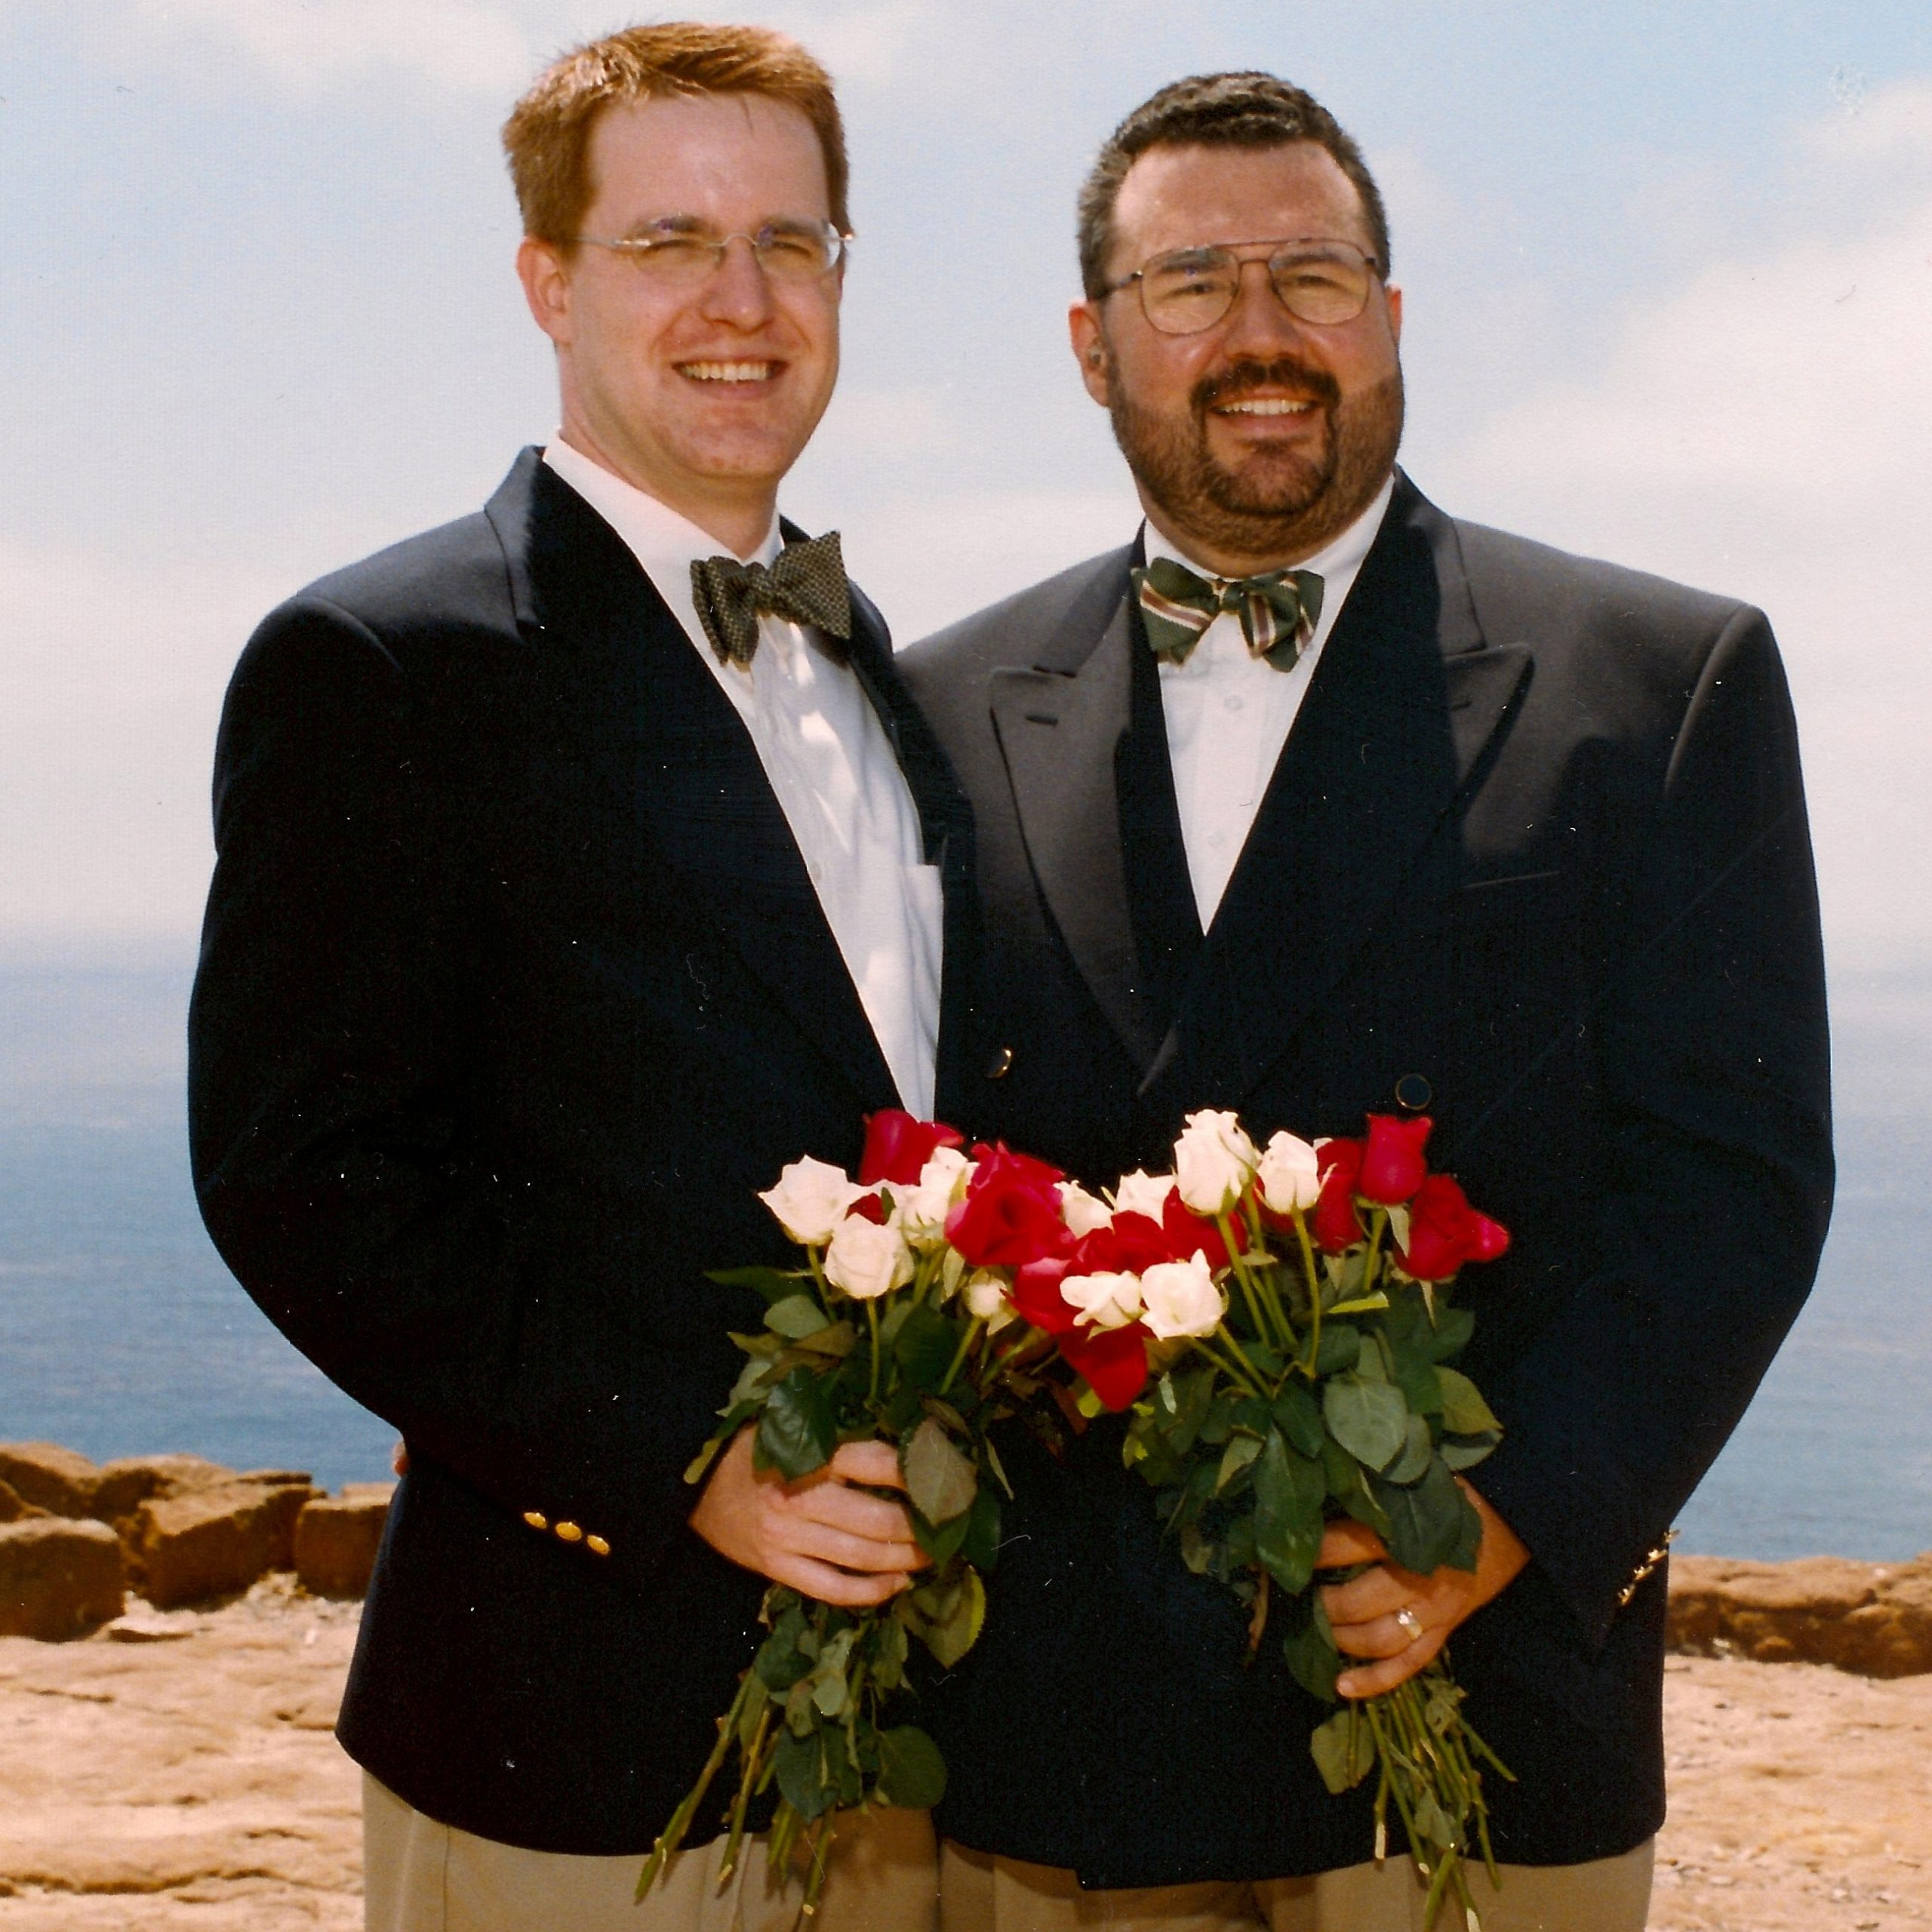 Hugh and Brian's Commitment Ceremony